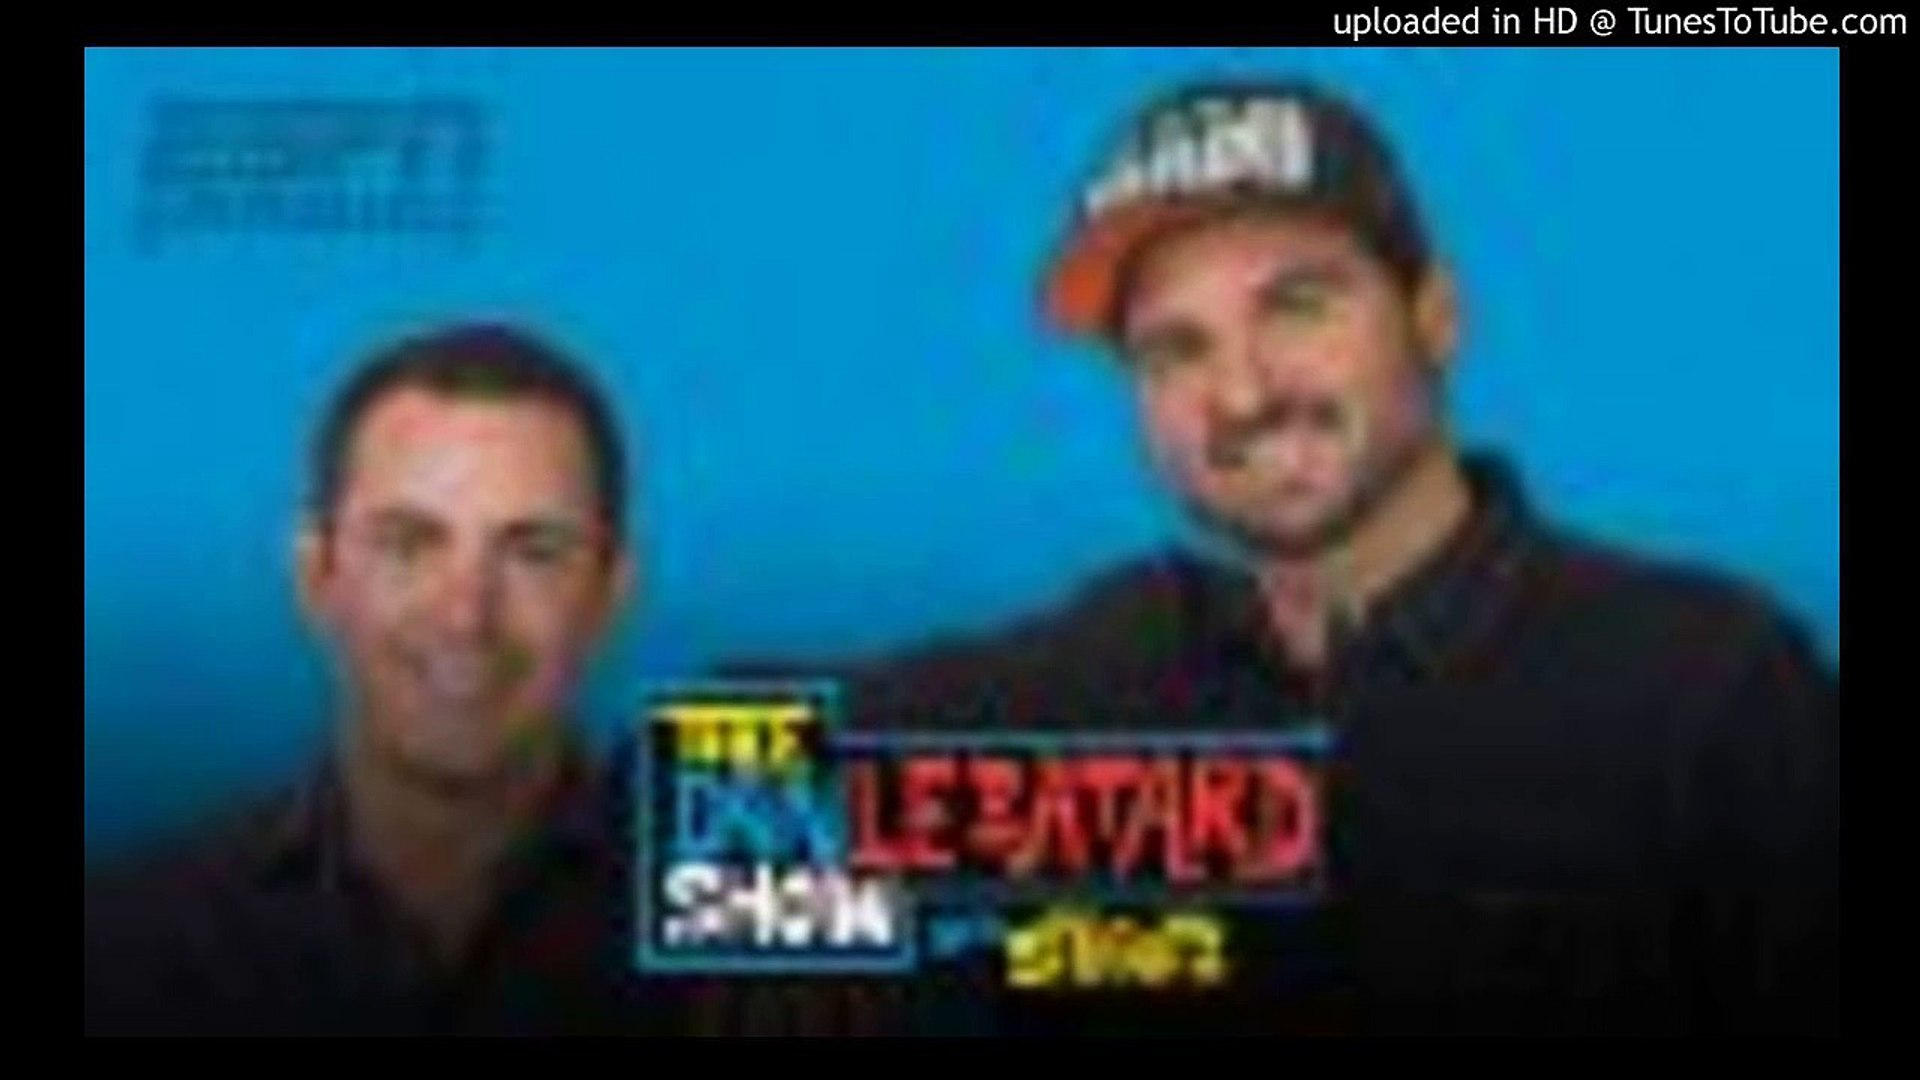 The Dan Le Batard Show Today (2/23/2016) - Hour 2: Rambis Twitter account, Irvings encou